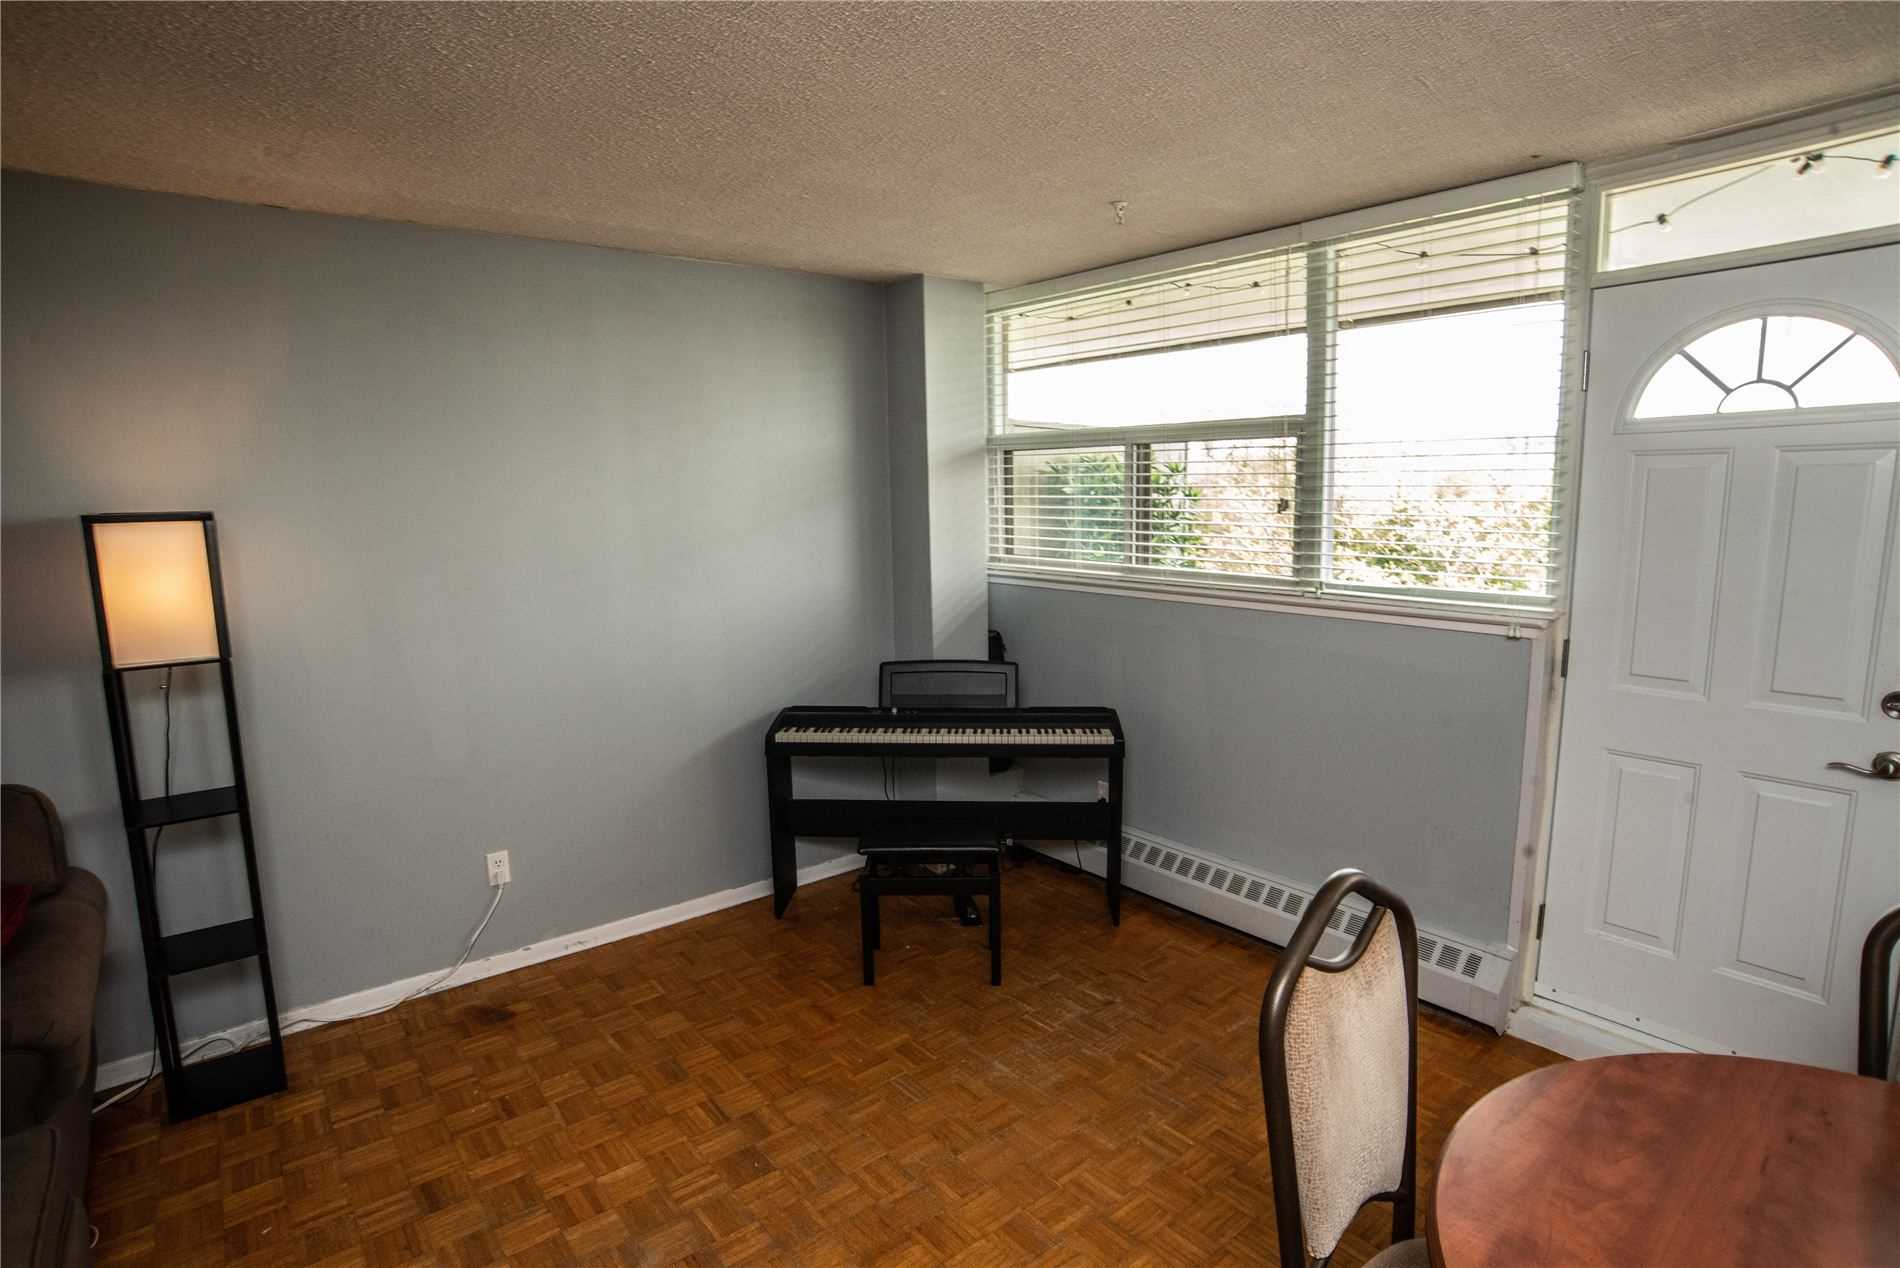 Image 18 of 20 showing inside of 1 Bedroom Condo Apt Apartment for Sale at 215 Glenridge Ave Unit# 310, St. Catharines L2T3J7